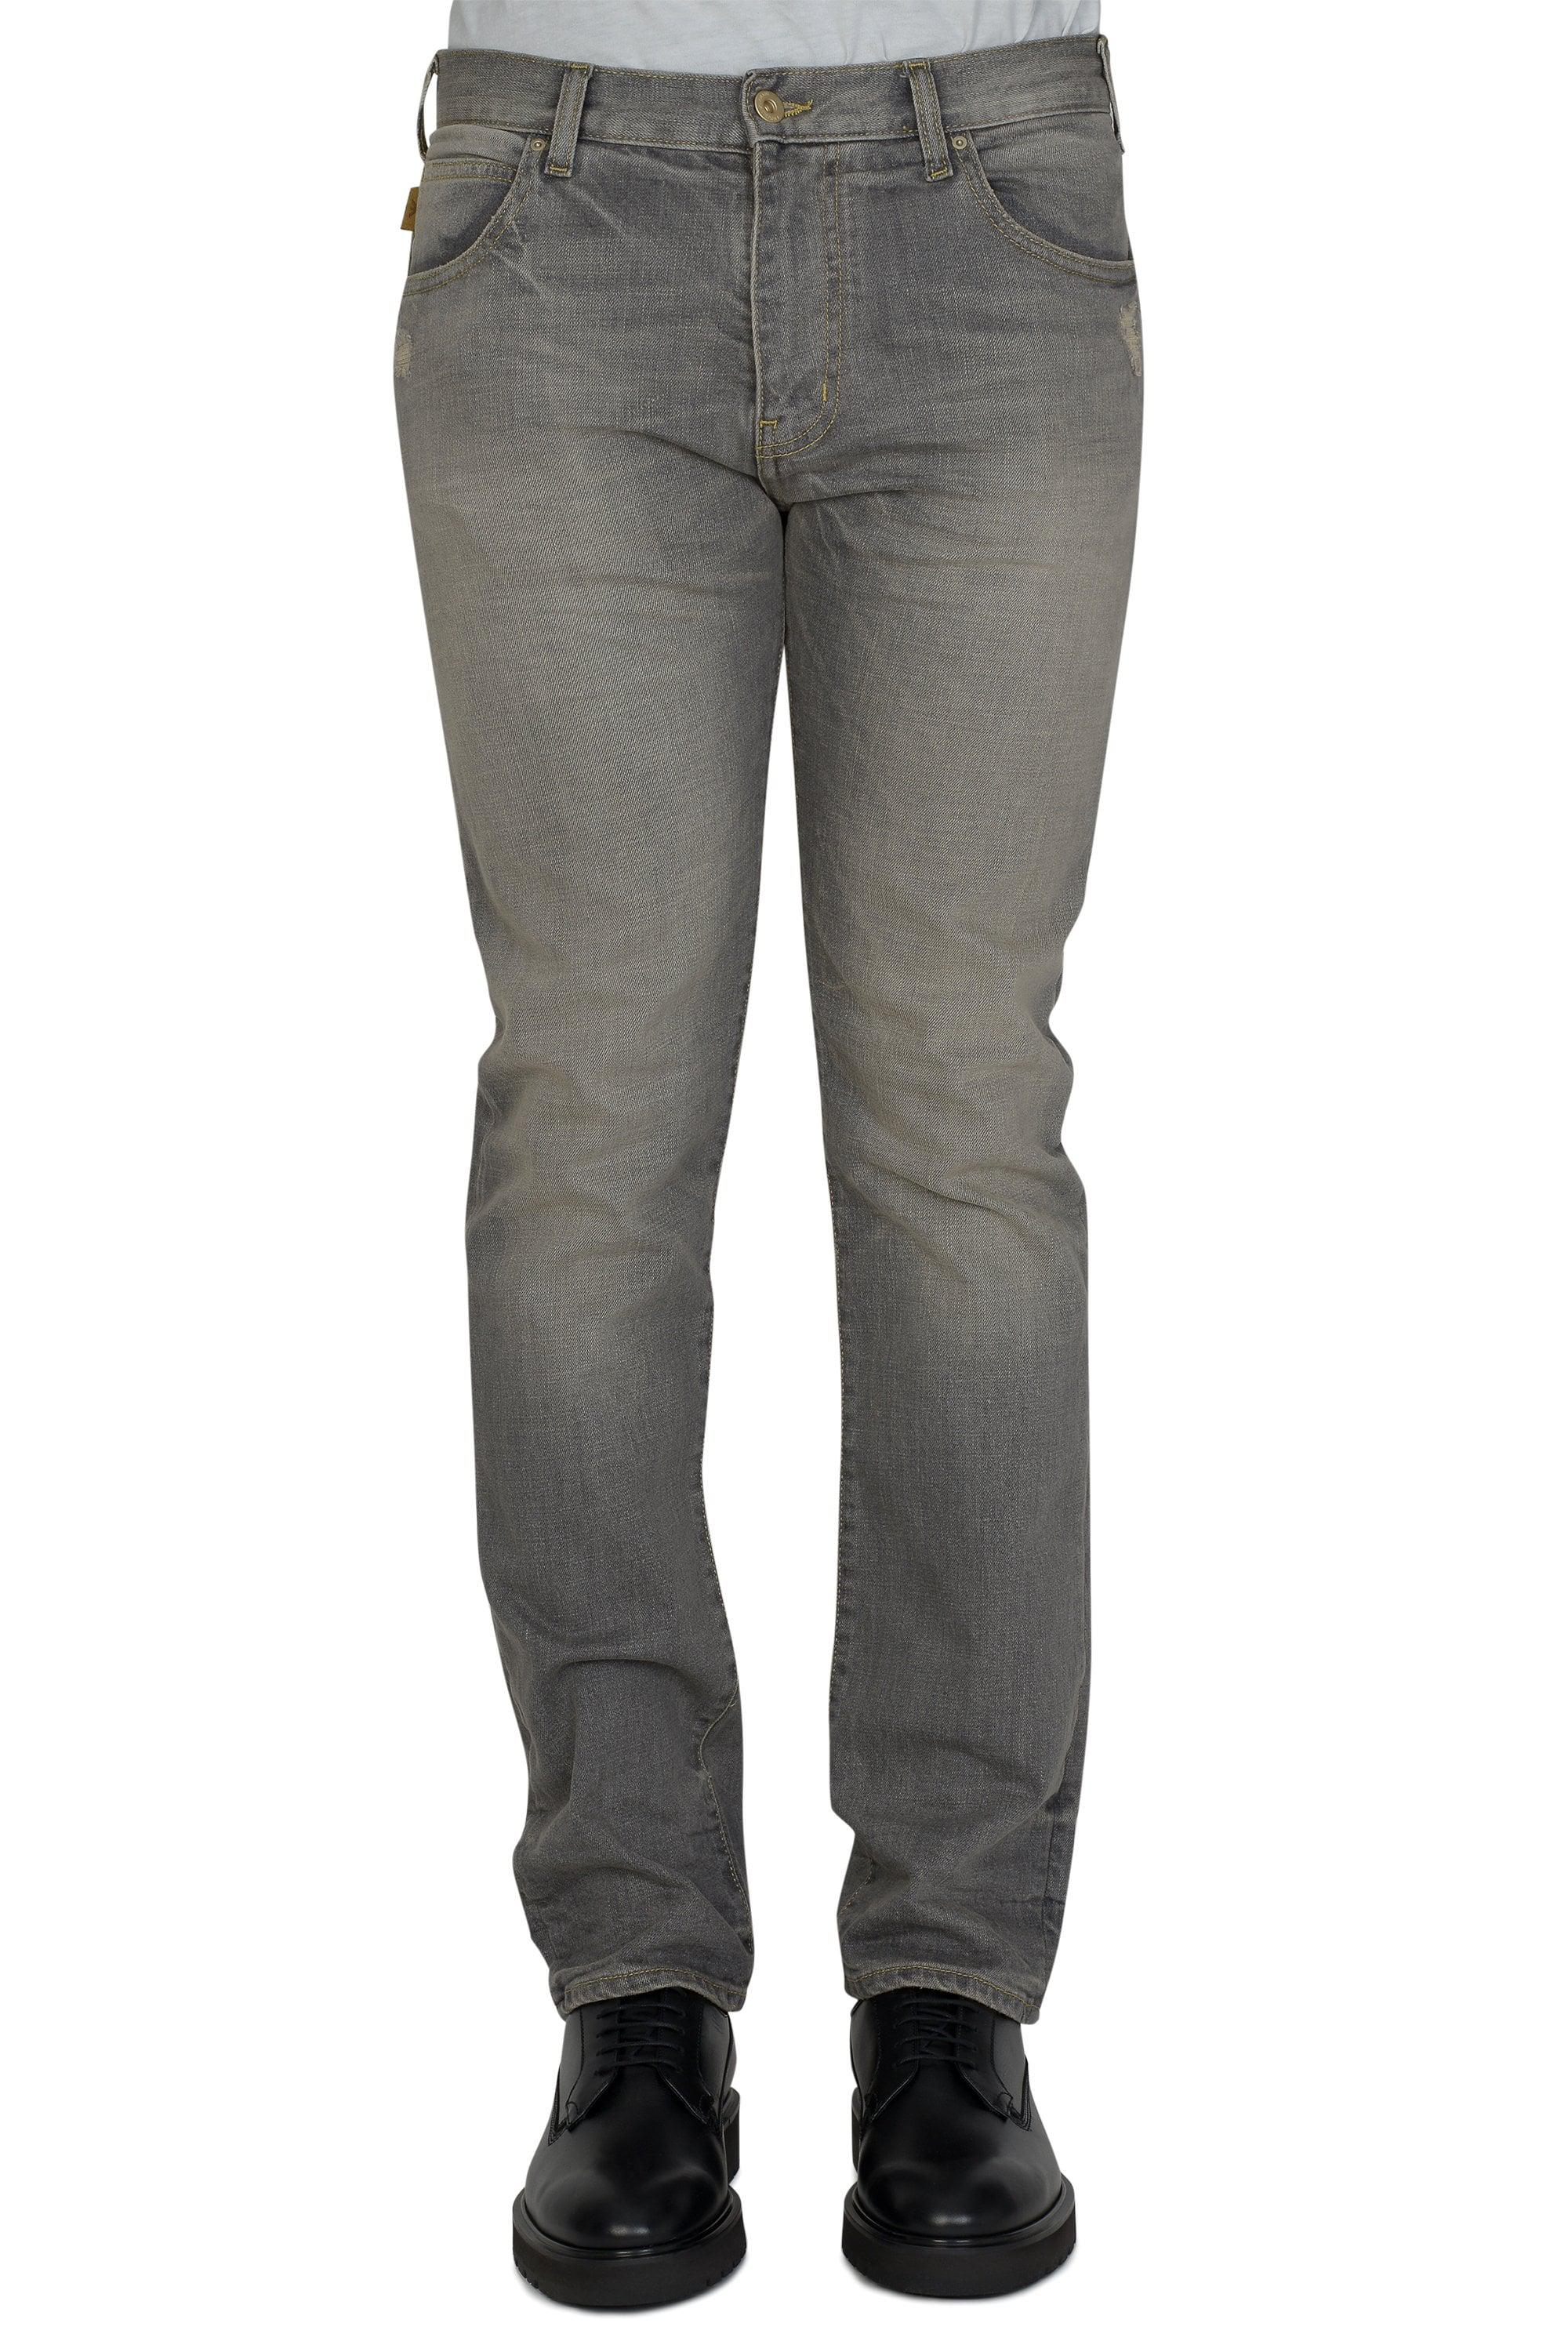 2ae96d310d Emporio Armani Vintage Wash Jeans in Gray for Men - Lyst